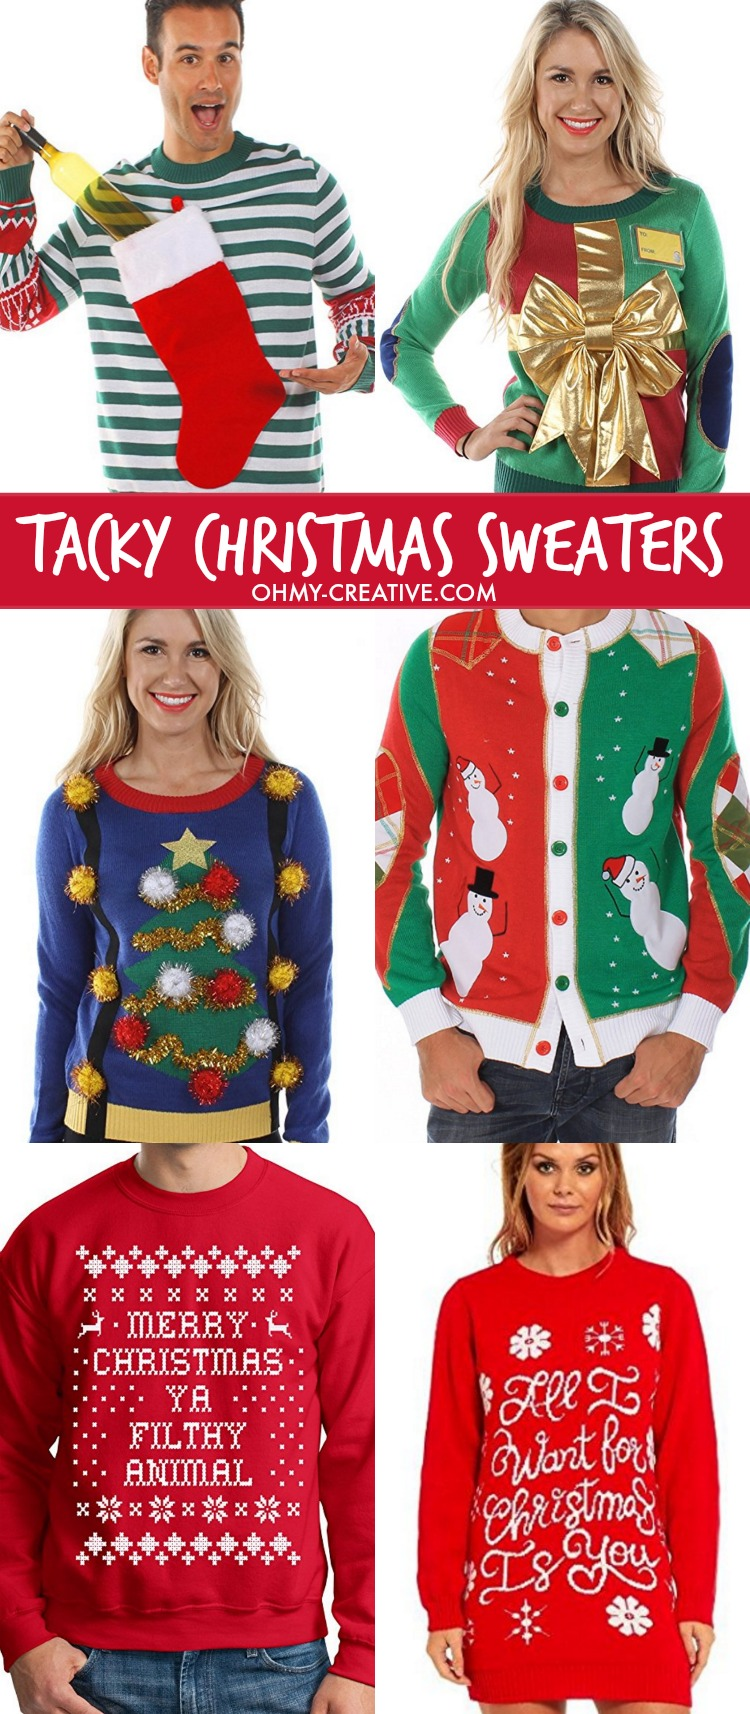 best-tacky-ugly-christmas-sweaters-ohmy-creative-com